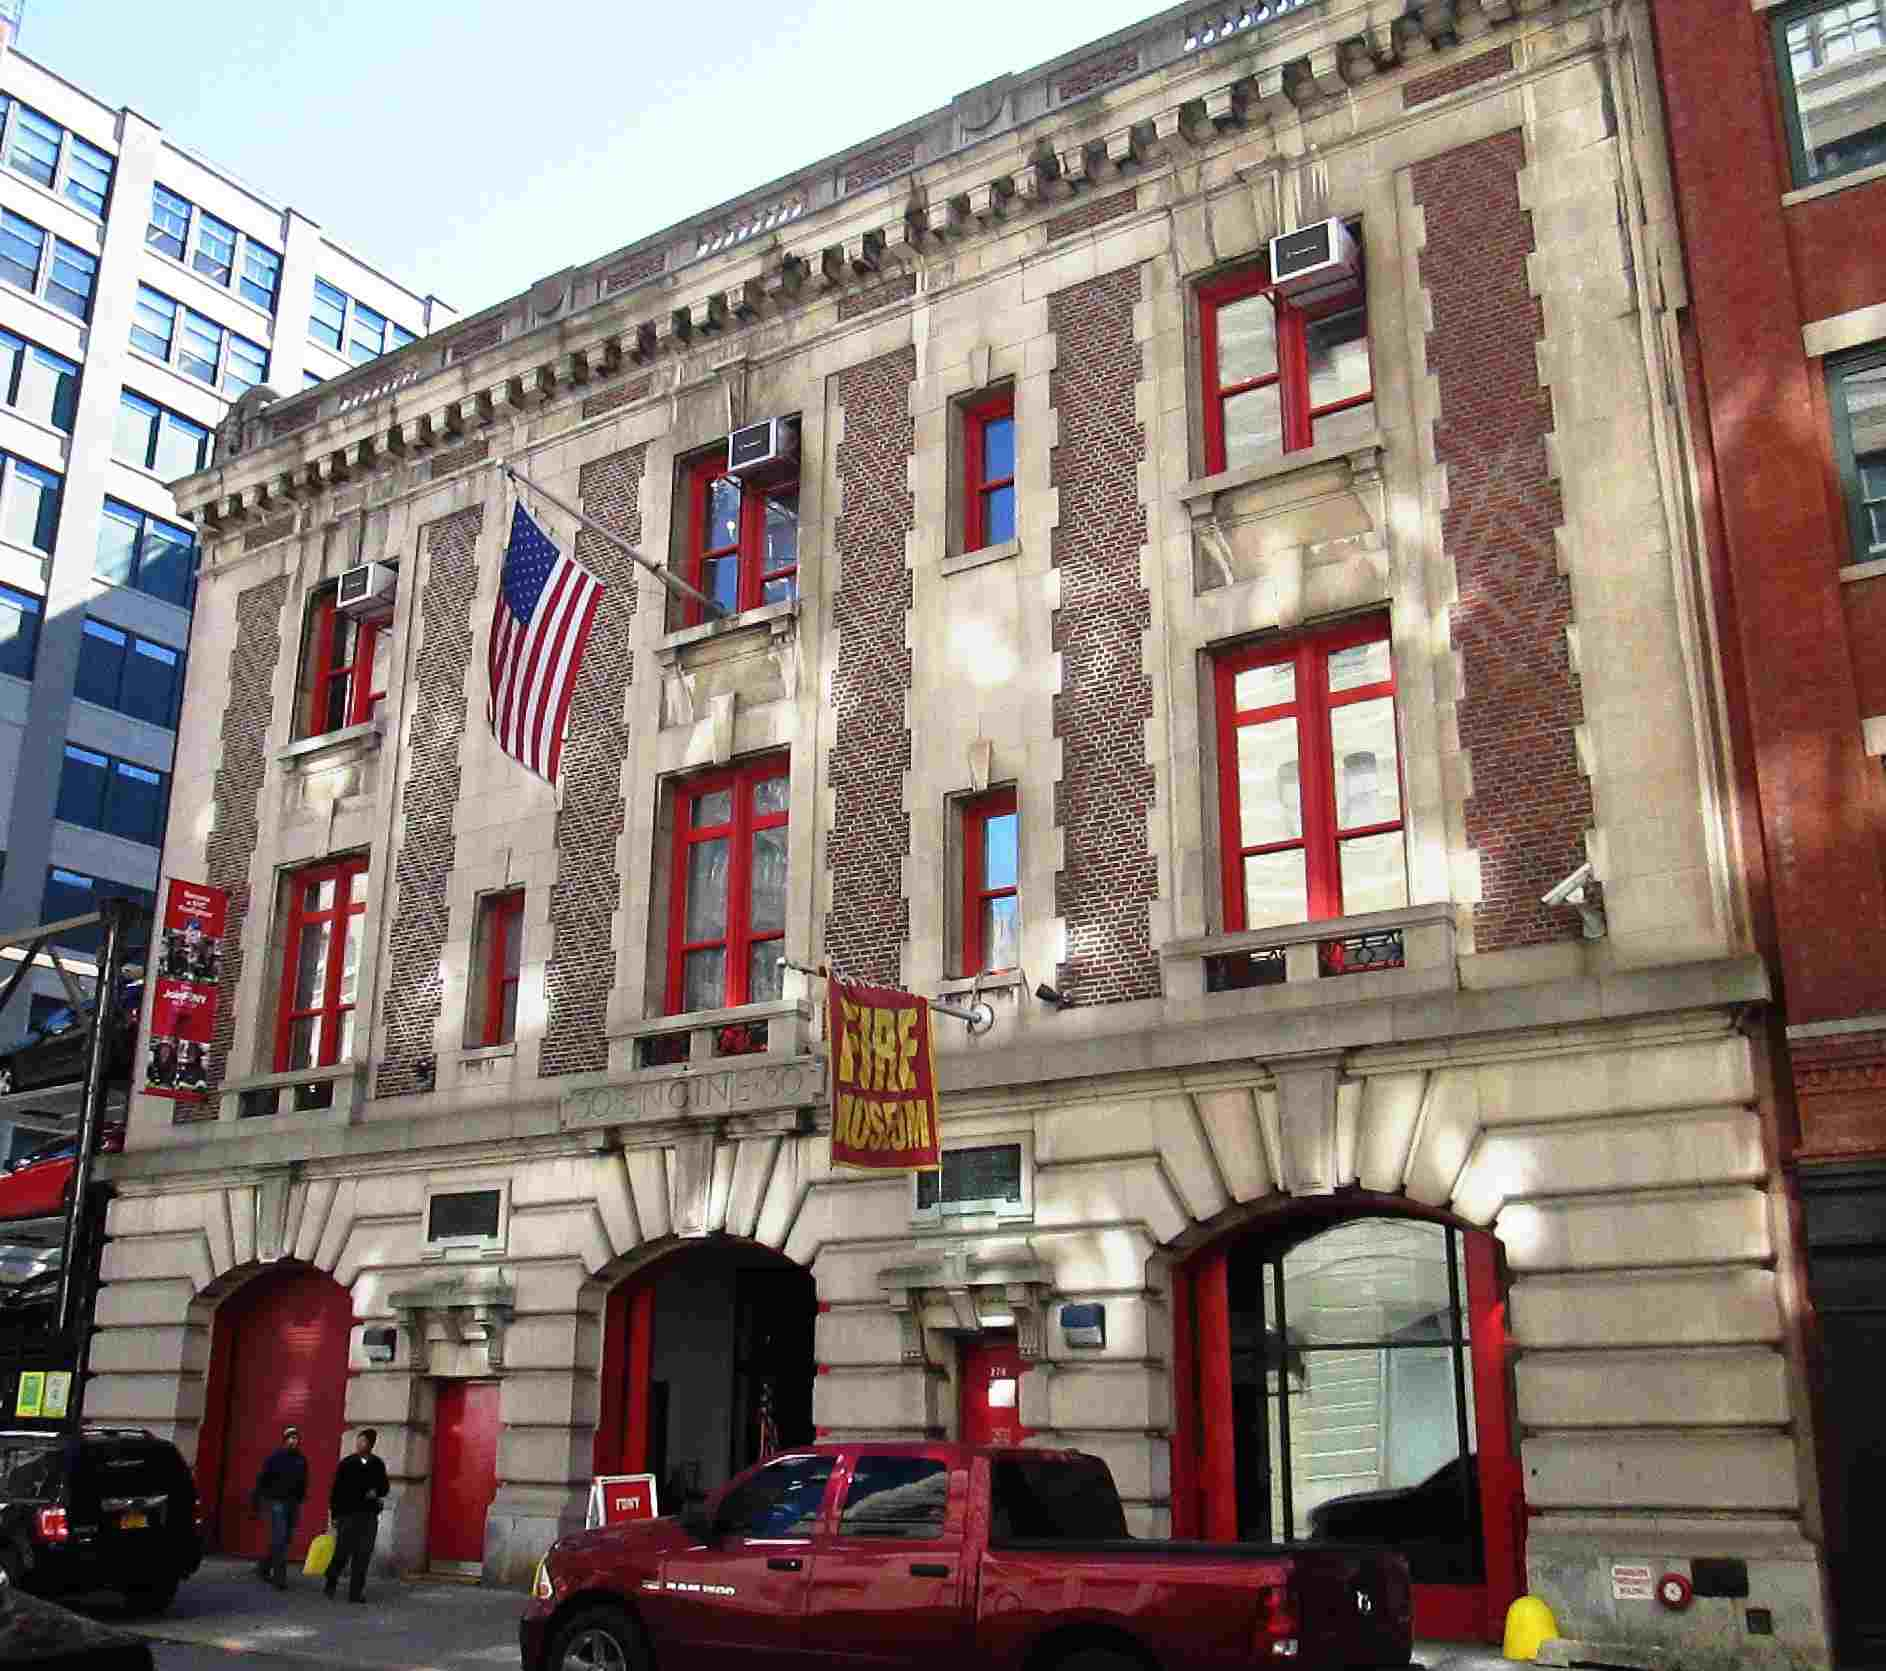 The New York City Fire Museum at 278 Spring Street between Varick and Hudson Streets in the Hudson Square neighborhood of Manhattan, New York City was formerly the firehouse for Engine Company 30.